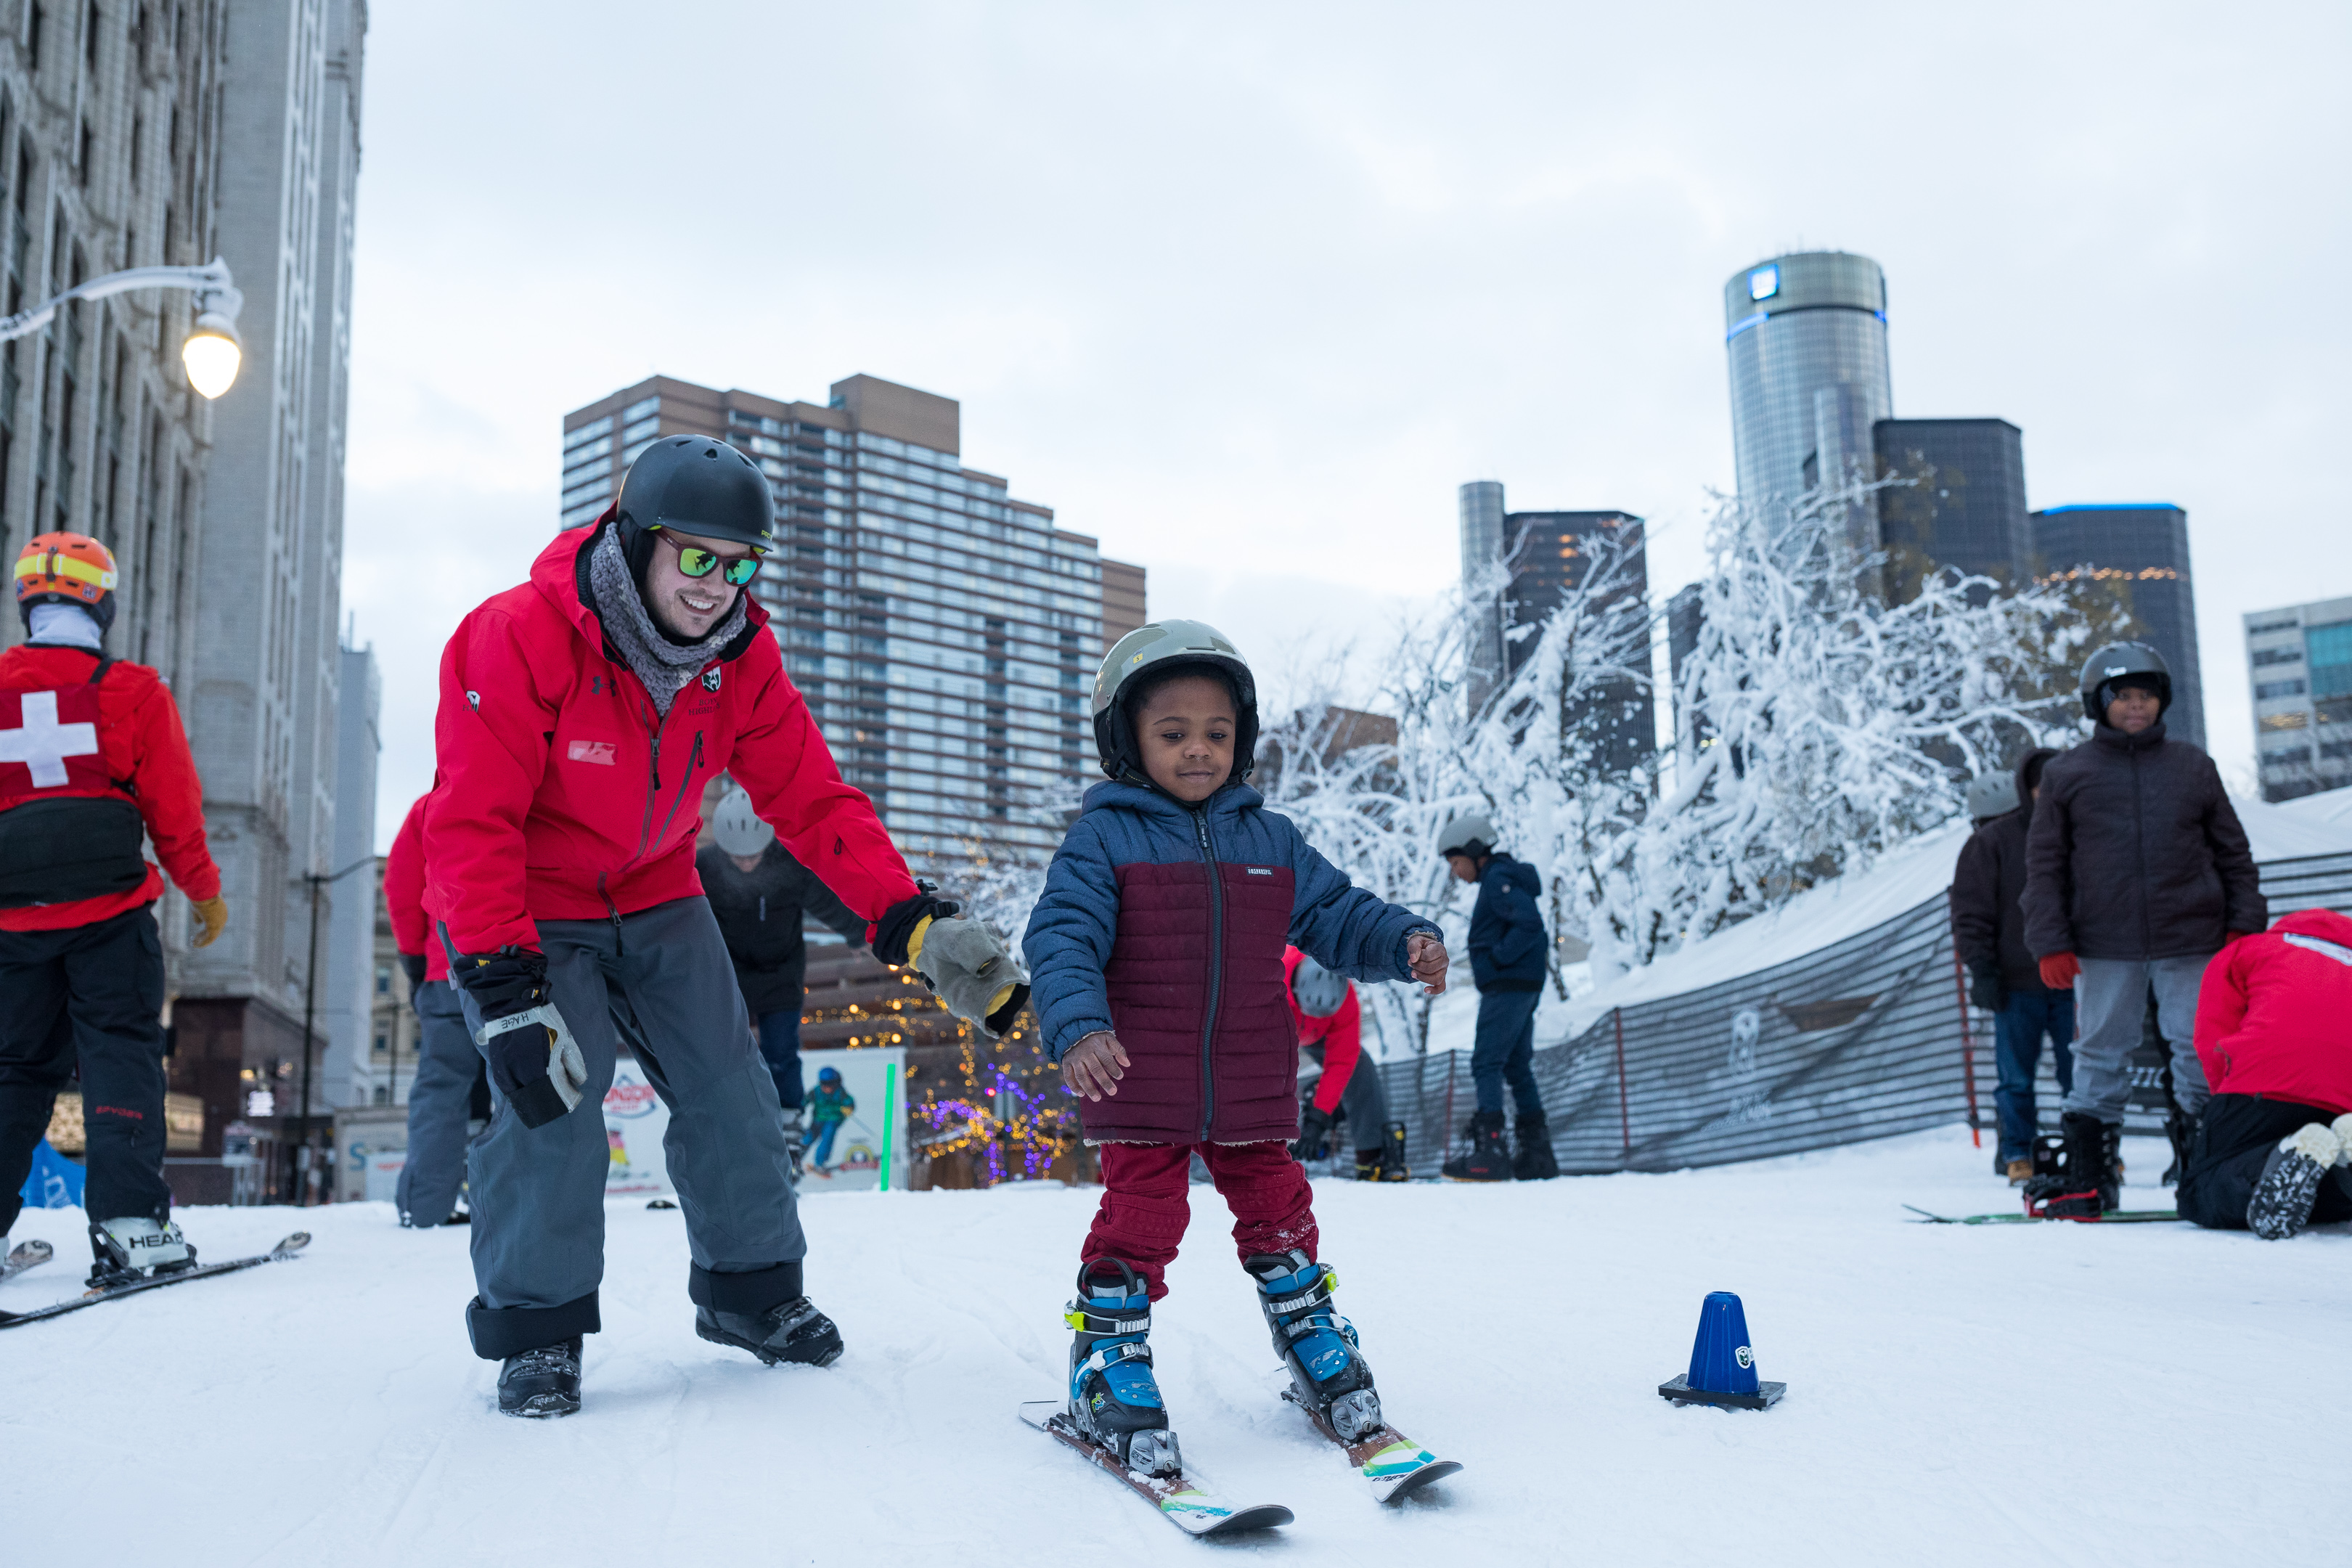 A child gently skis while an adult stands behind him. Both are smiling.